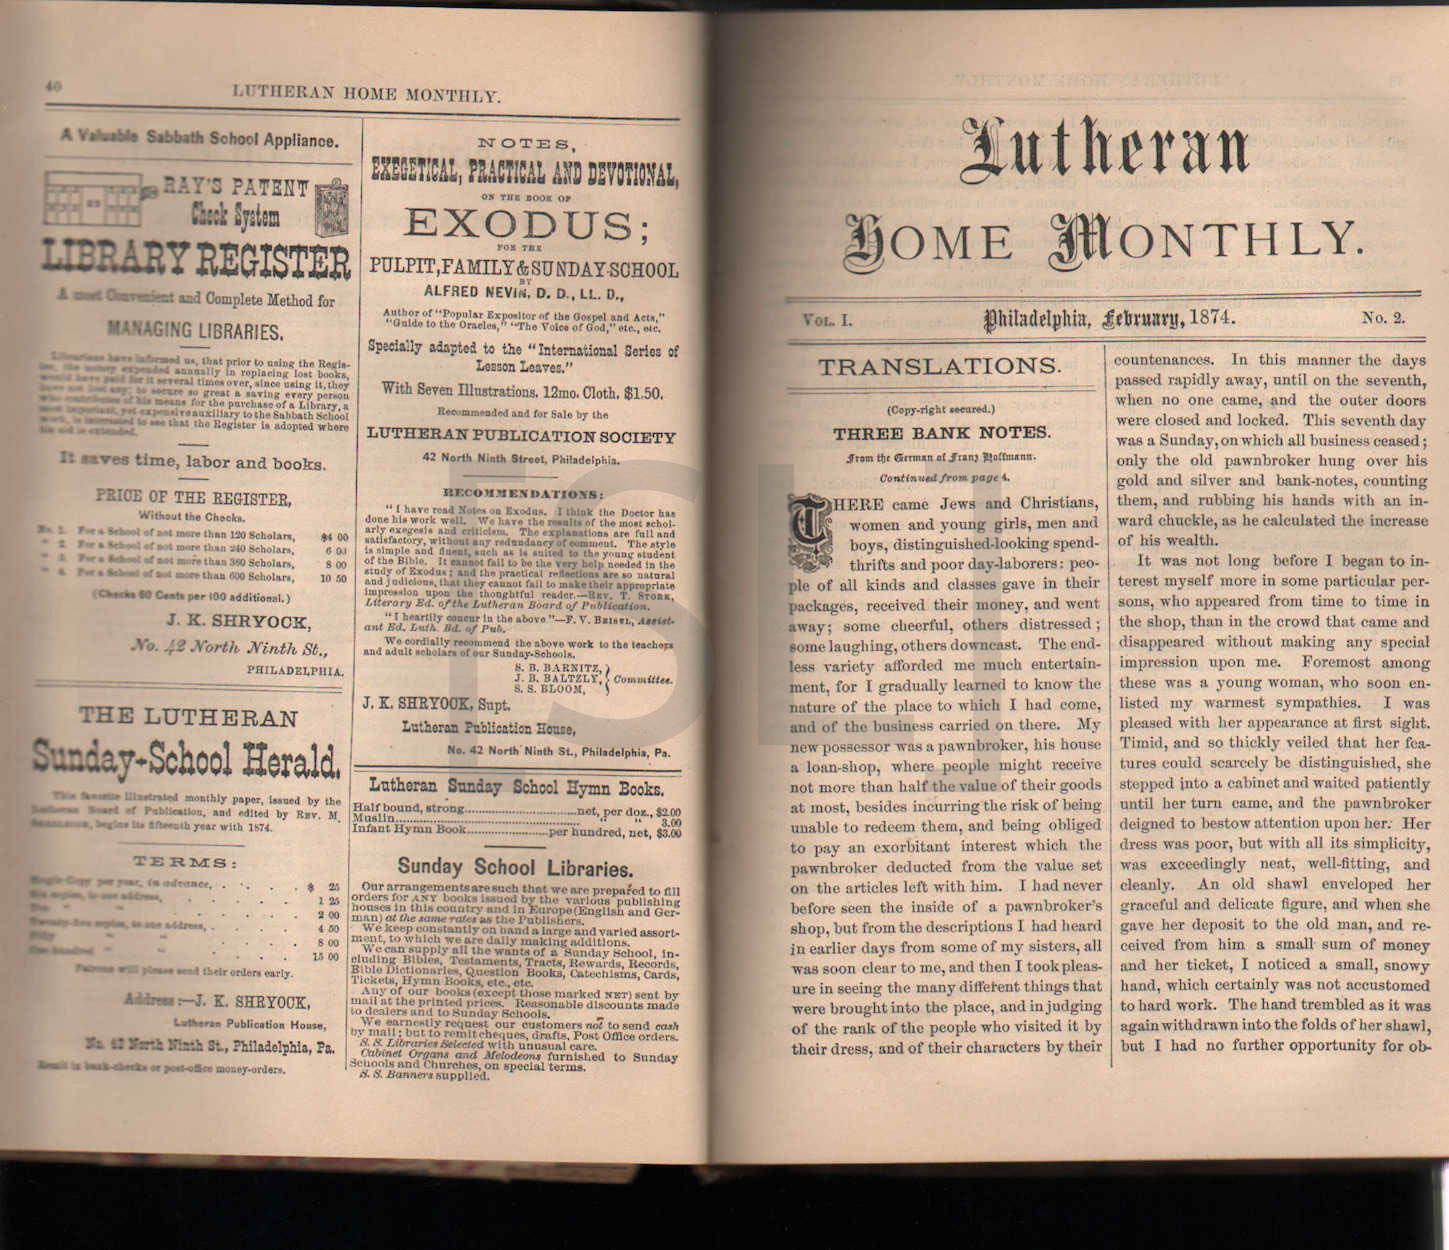 Lutheran Home Monthly